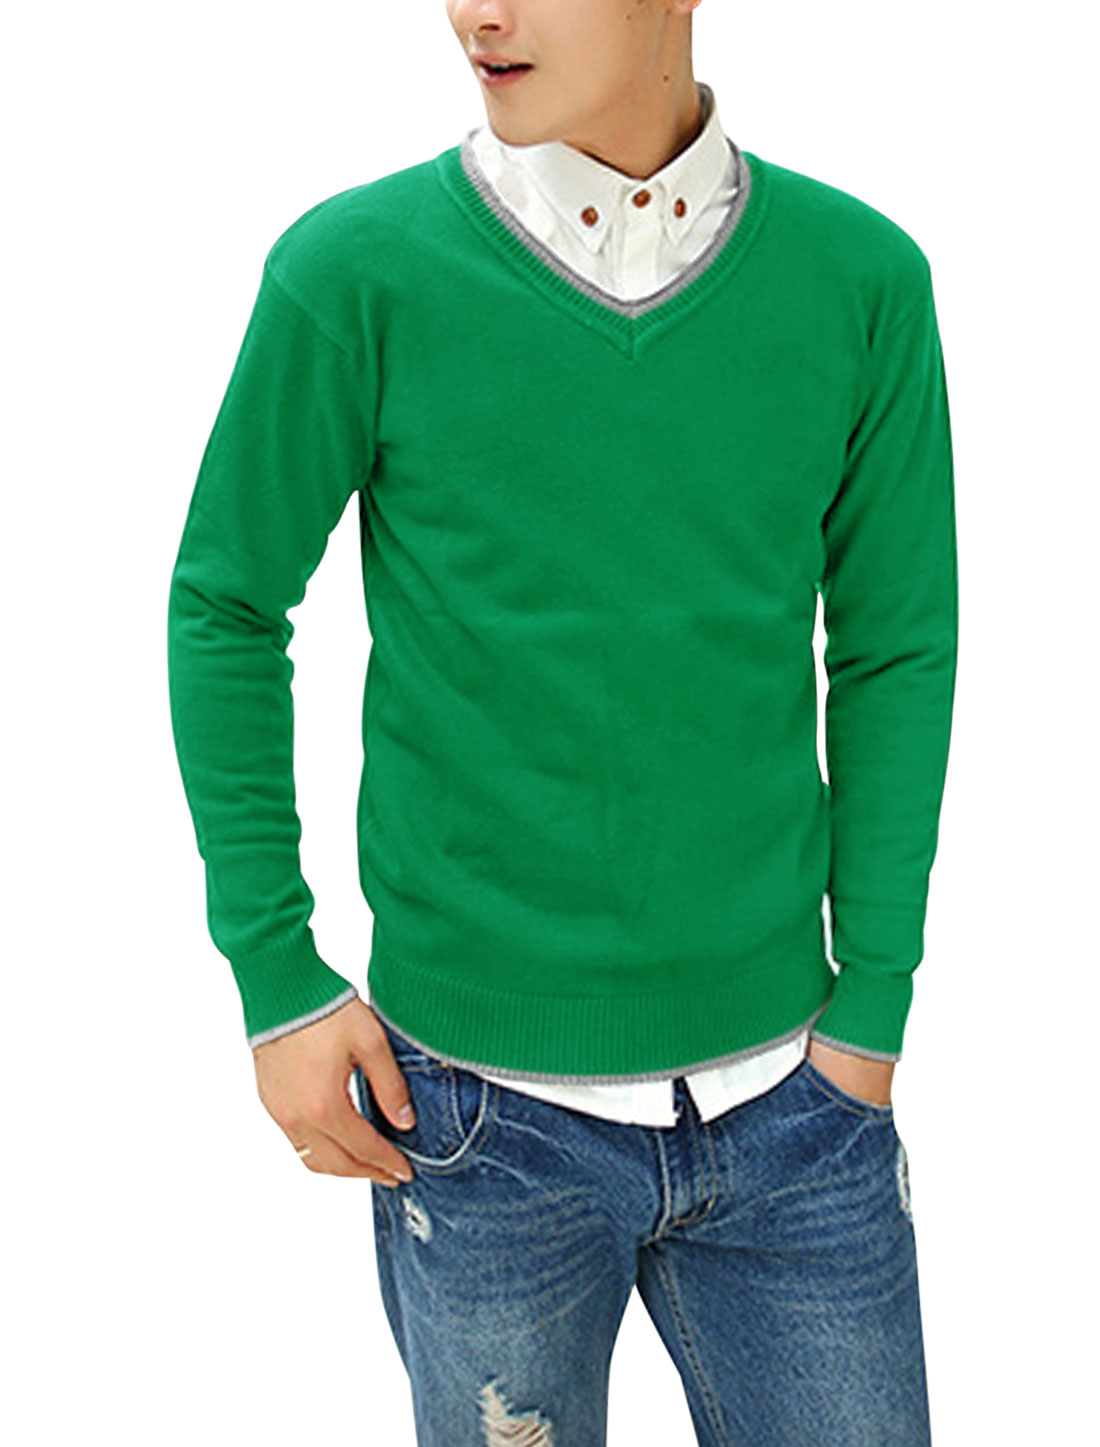 Men Ribbed Cuffs Contrast Collar Patched Detail Casual Cozy Fit Sweater Green M